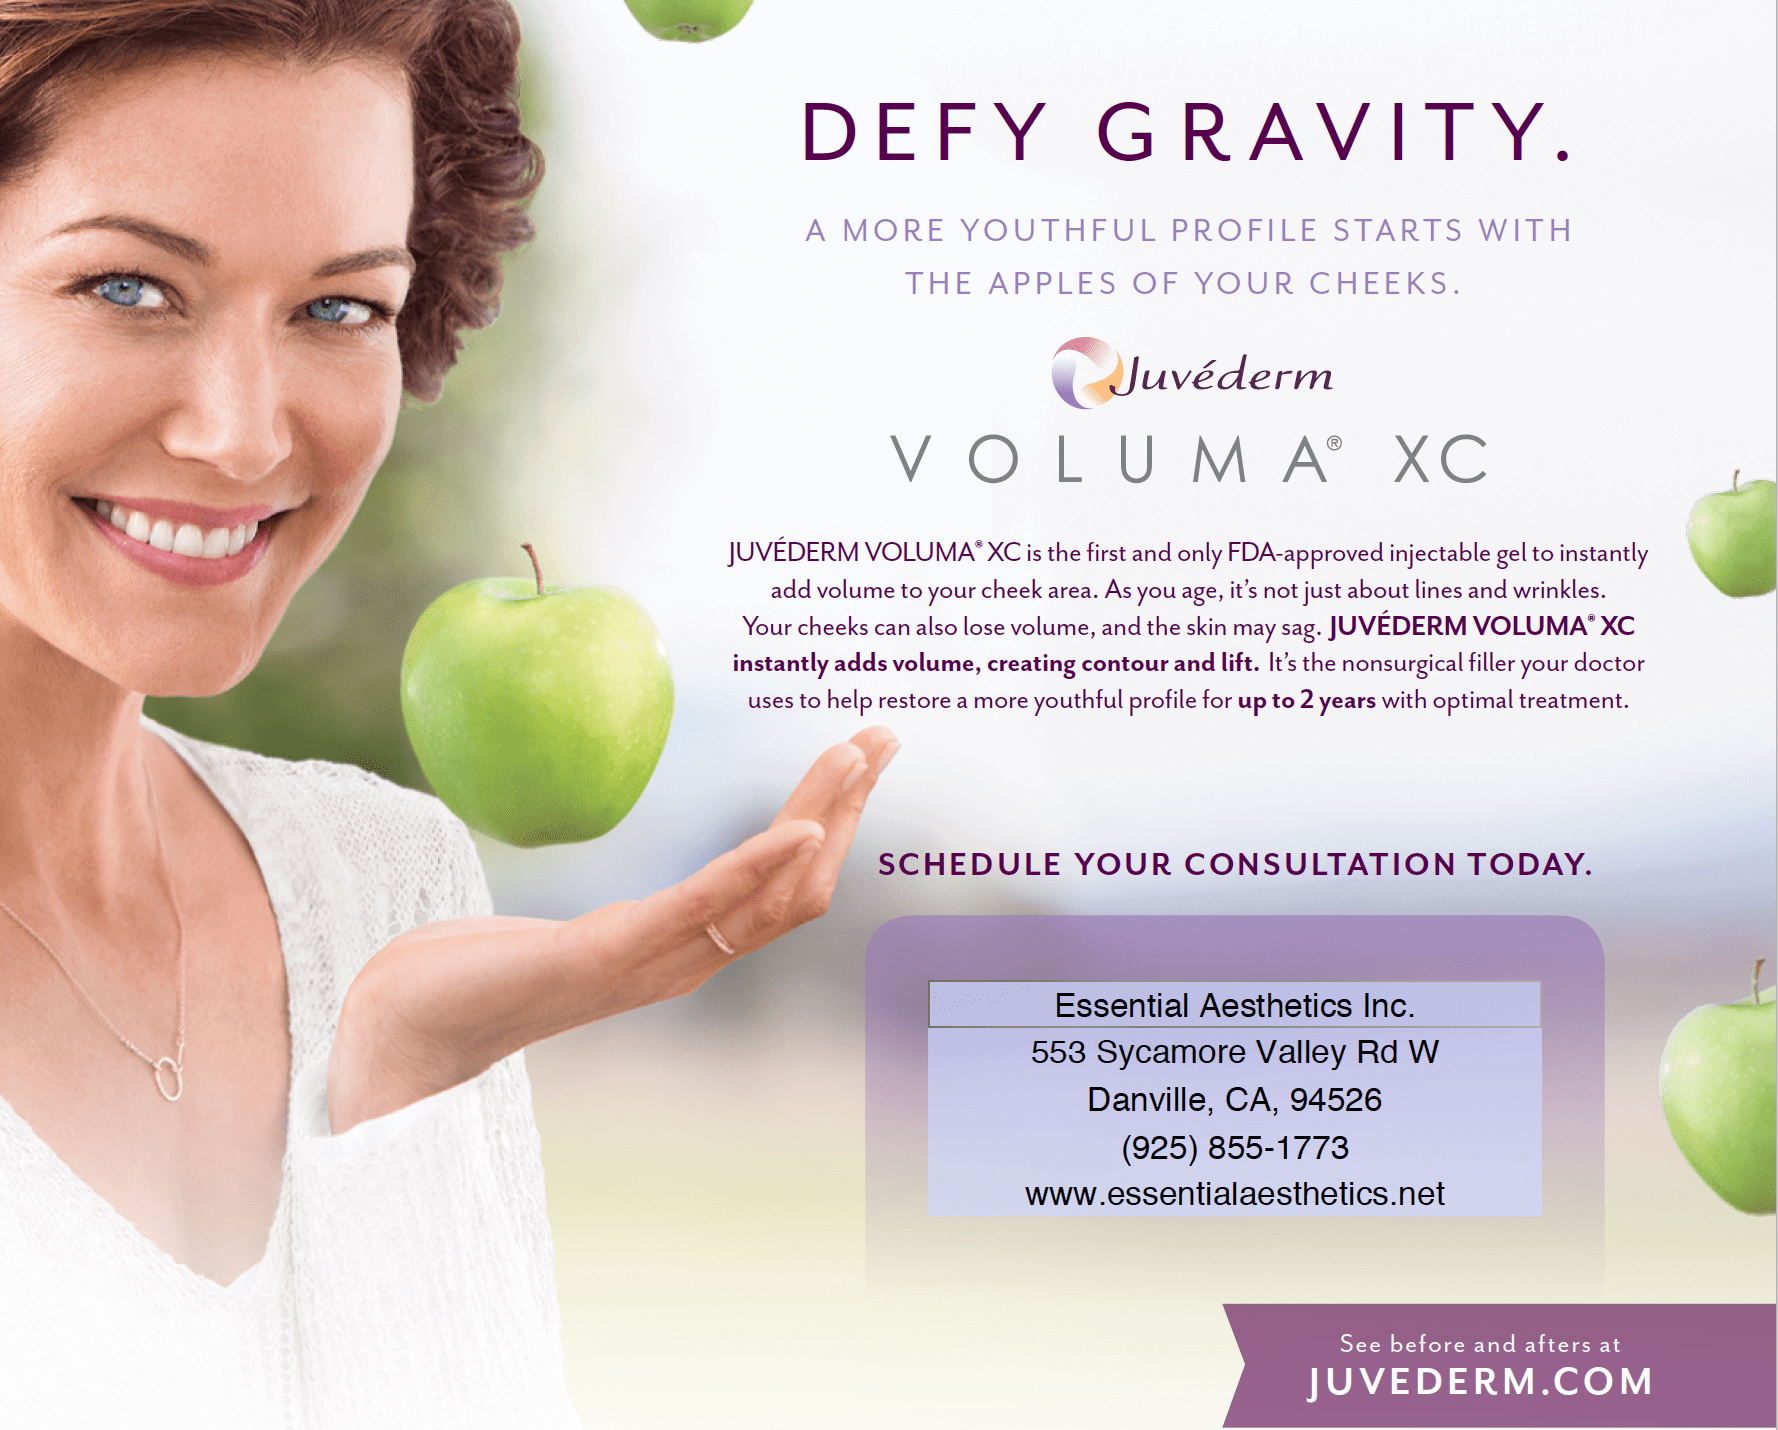 Defy Gravity with Juvederm® Voluma XC